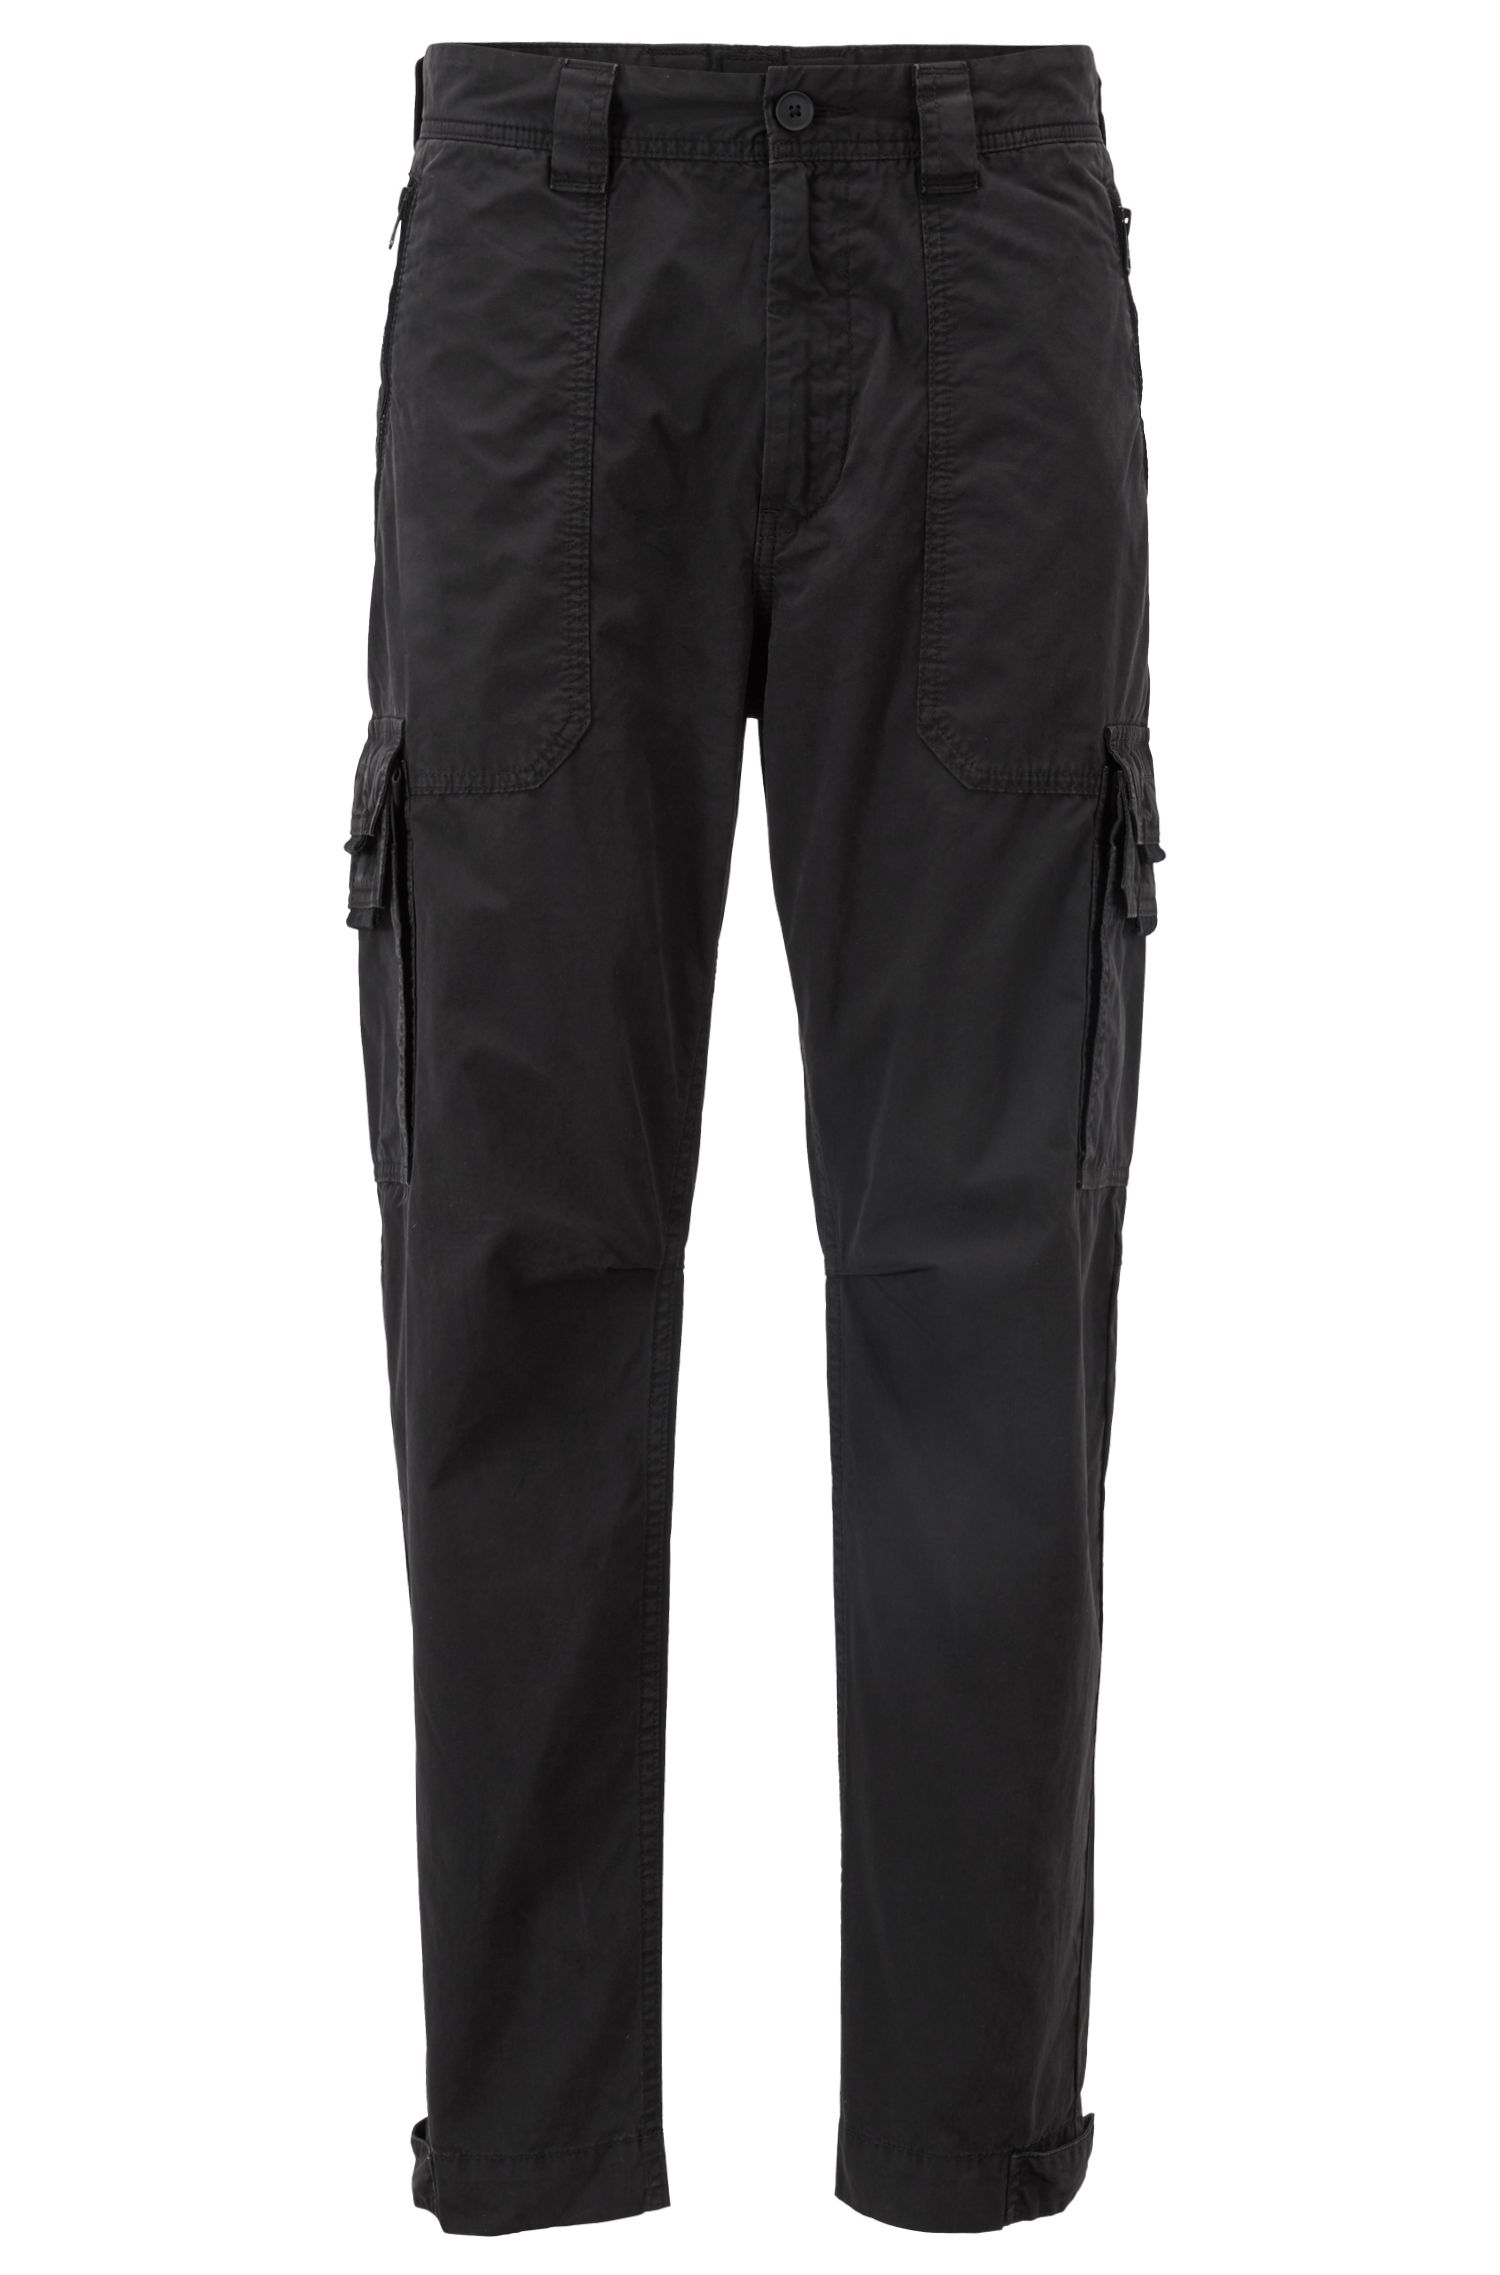 Tapered-fit cargo trousers in double-dyed cotton poplin, Black